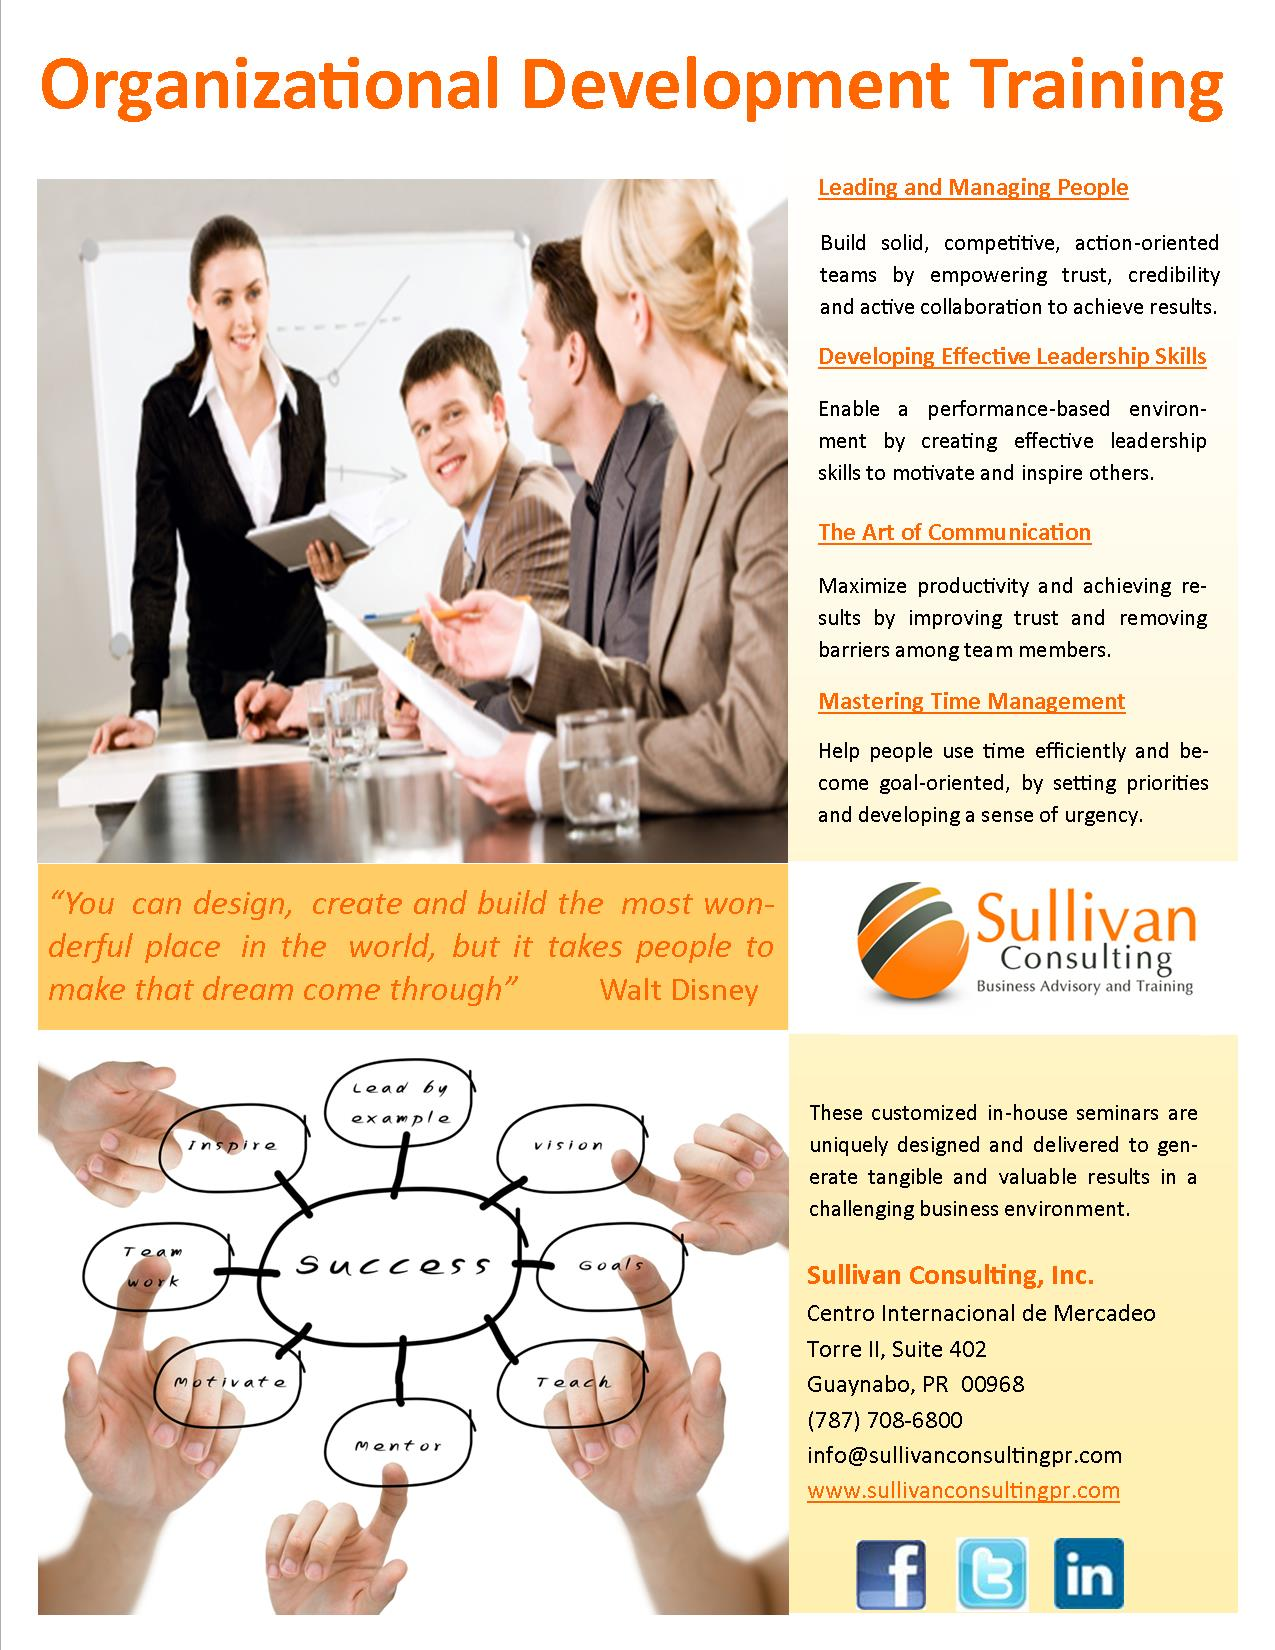 Organizational development training